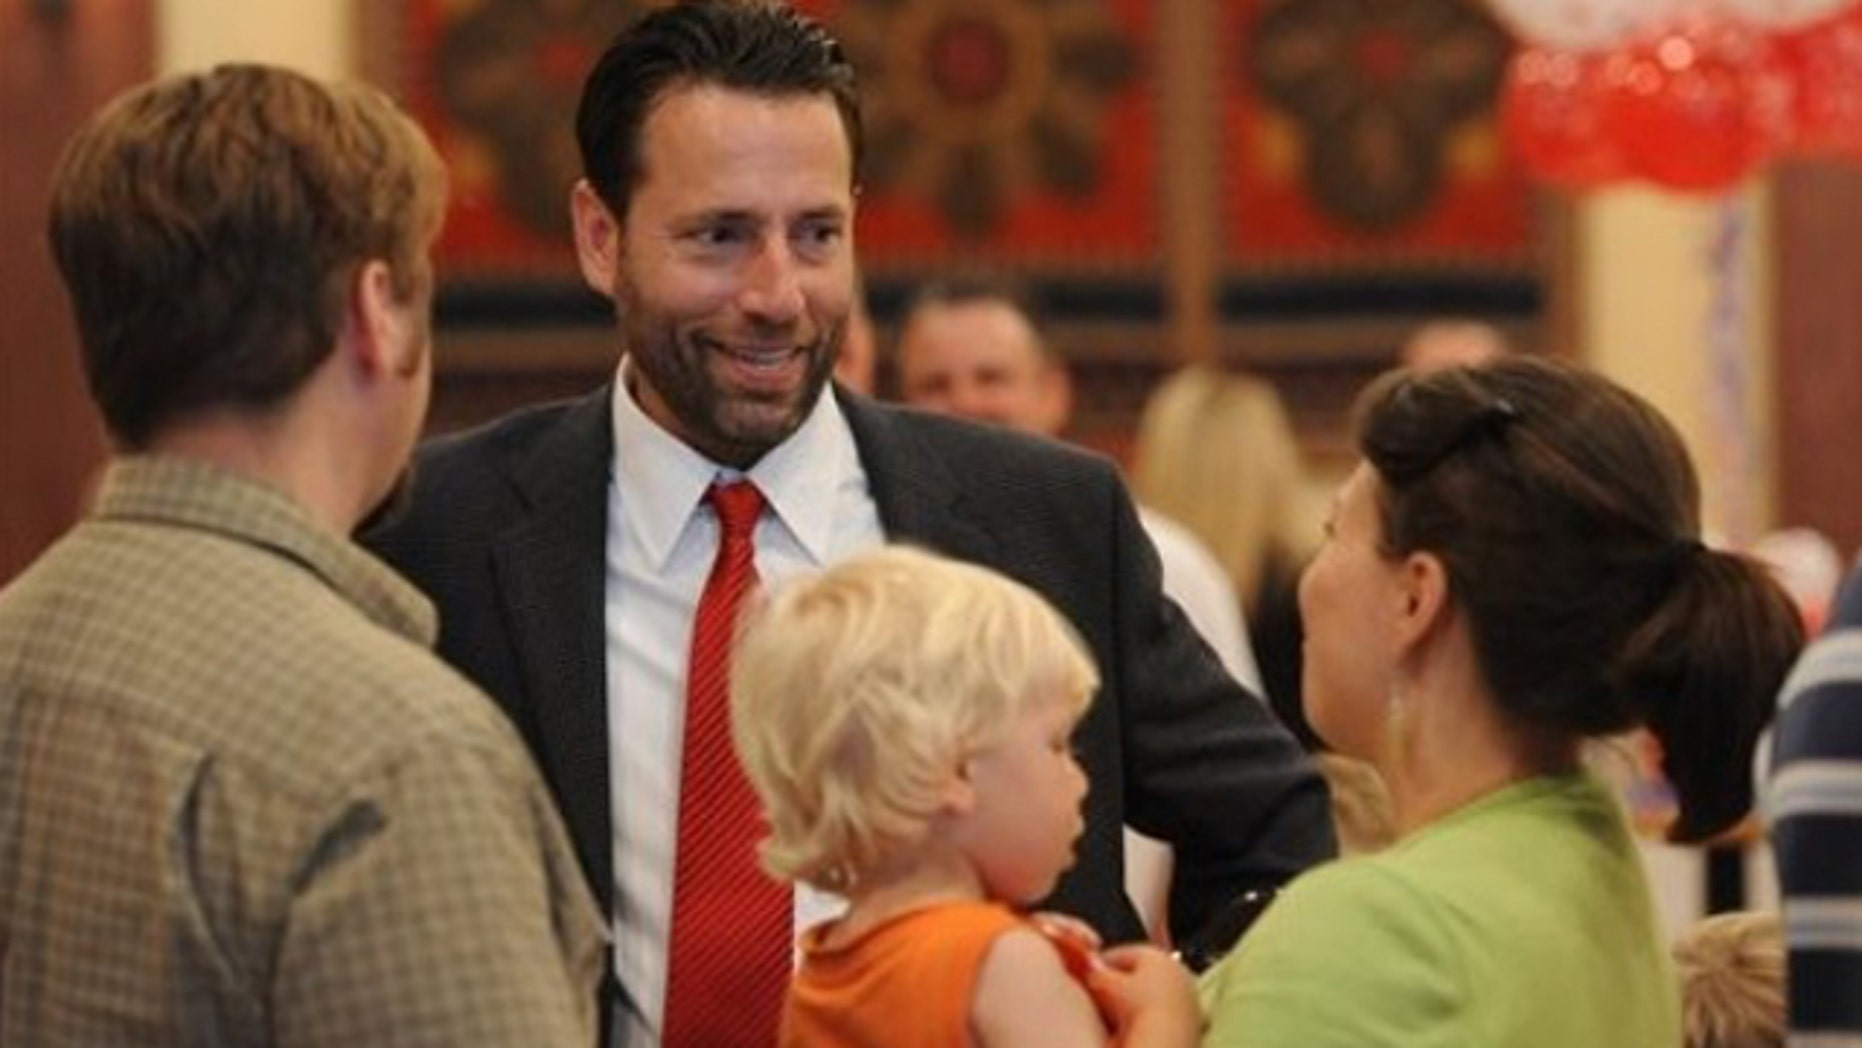 Aug. 24: Republican candidate for U.S. Senate  Joe Miller, center, smiles as he visits with supporters in Anchorage, Alaska.